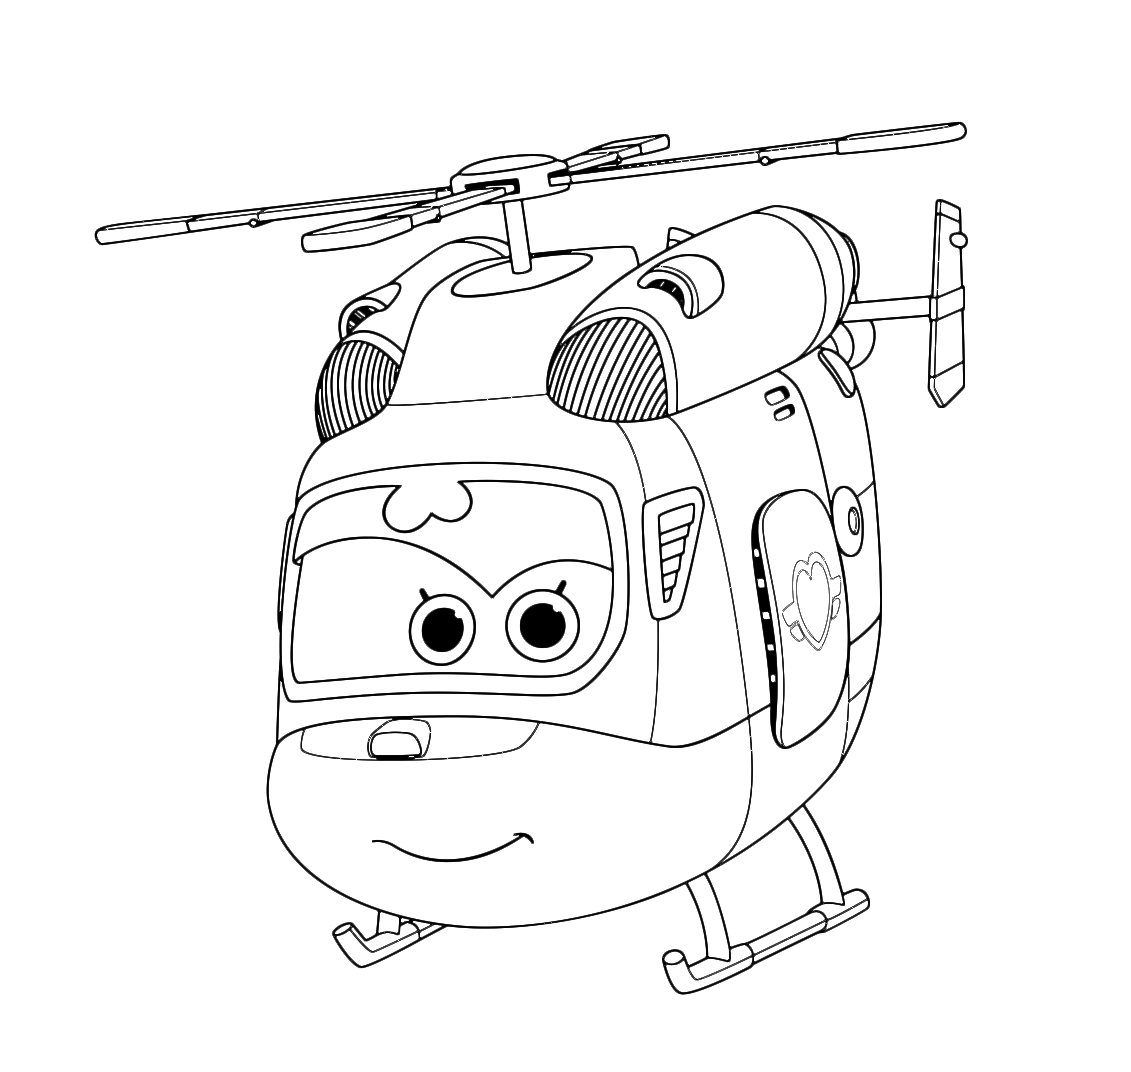 super wings coloring page wings dizzy is a beautiful helicopter - Sprout Super Wings Coloring Pages